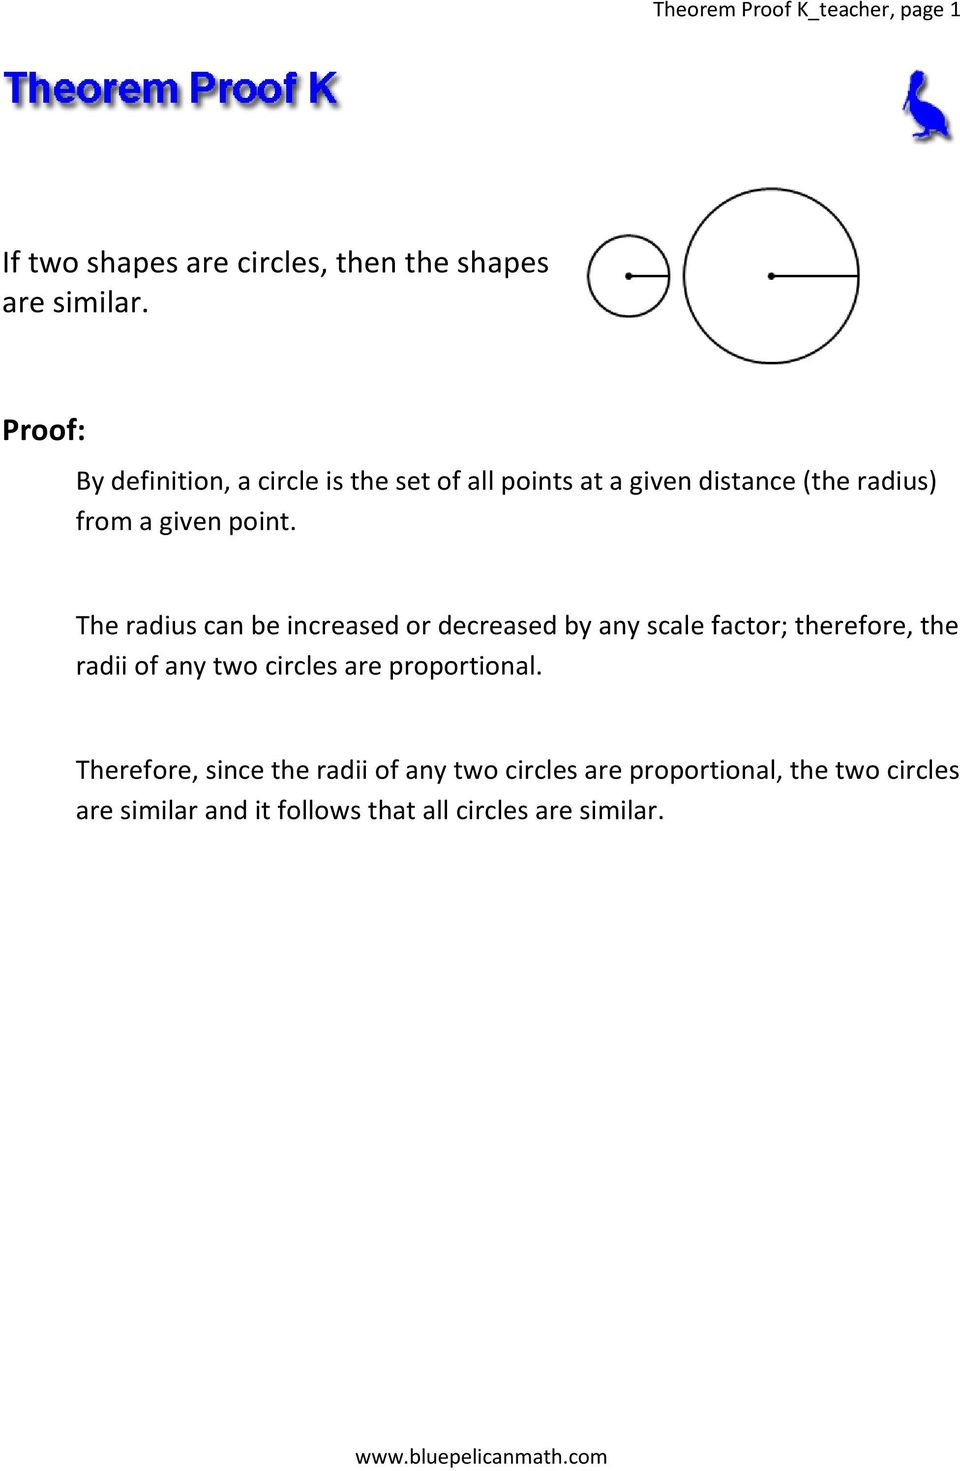 proofs of limit theorems pdf